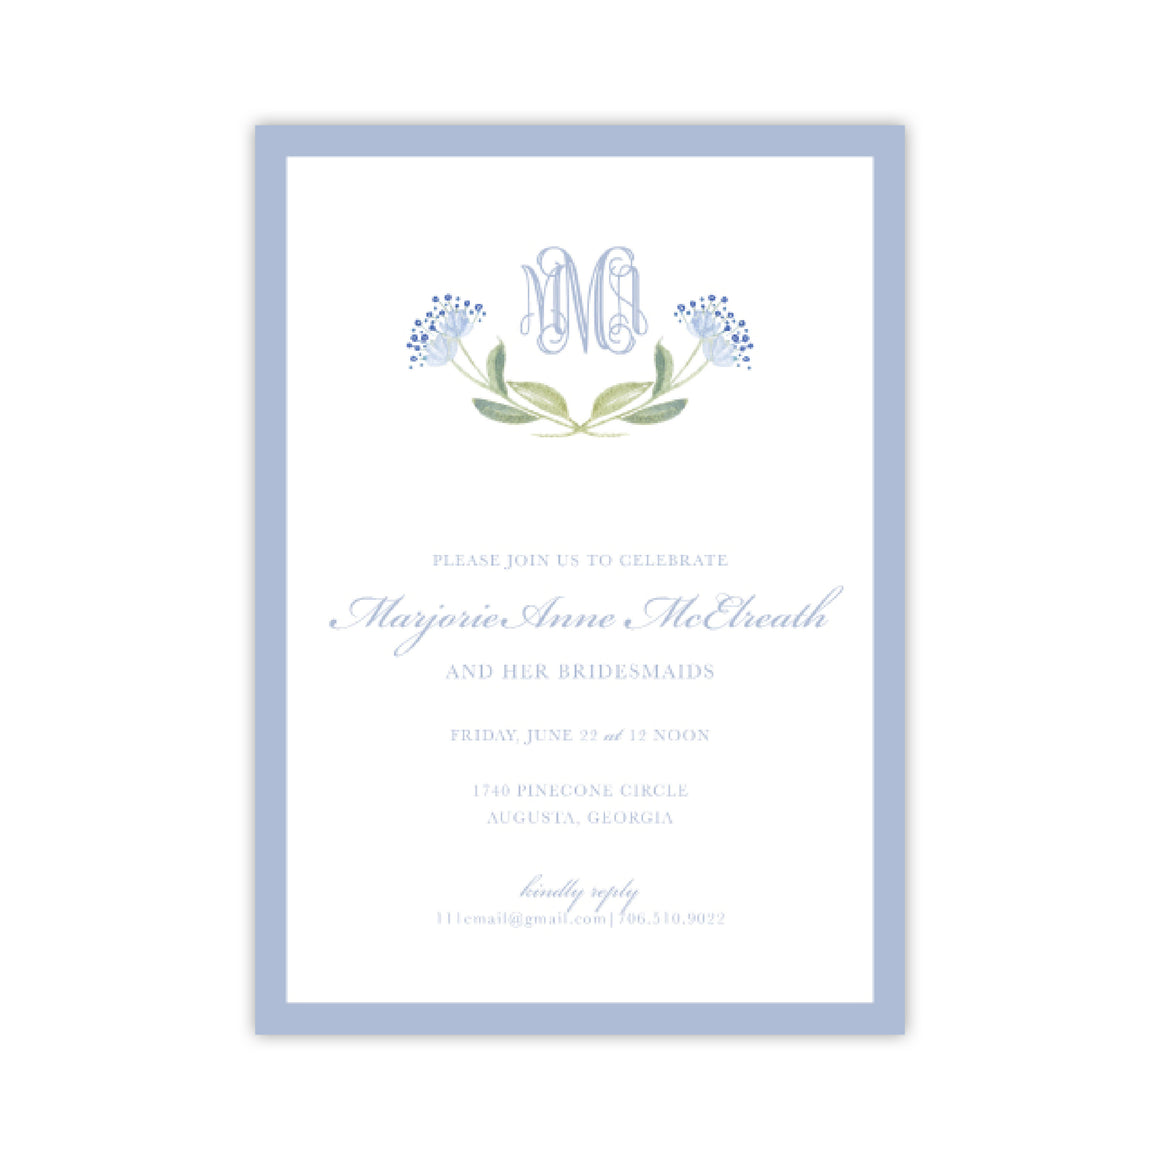 Dainty Flower Monogram Invitation